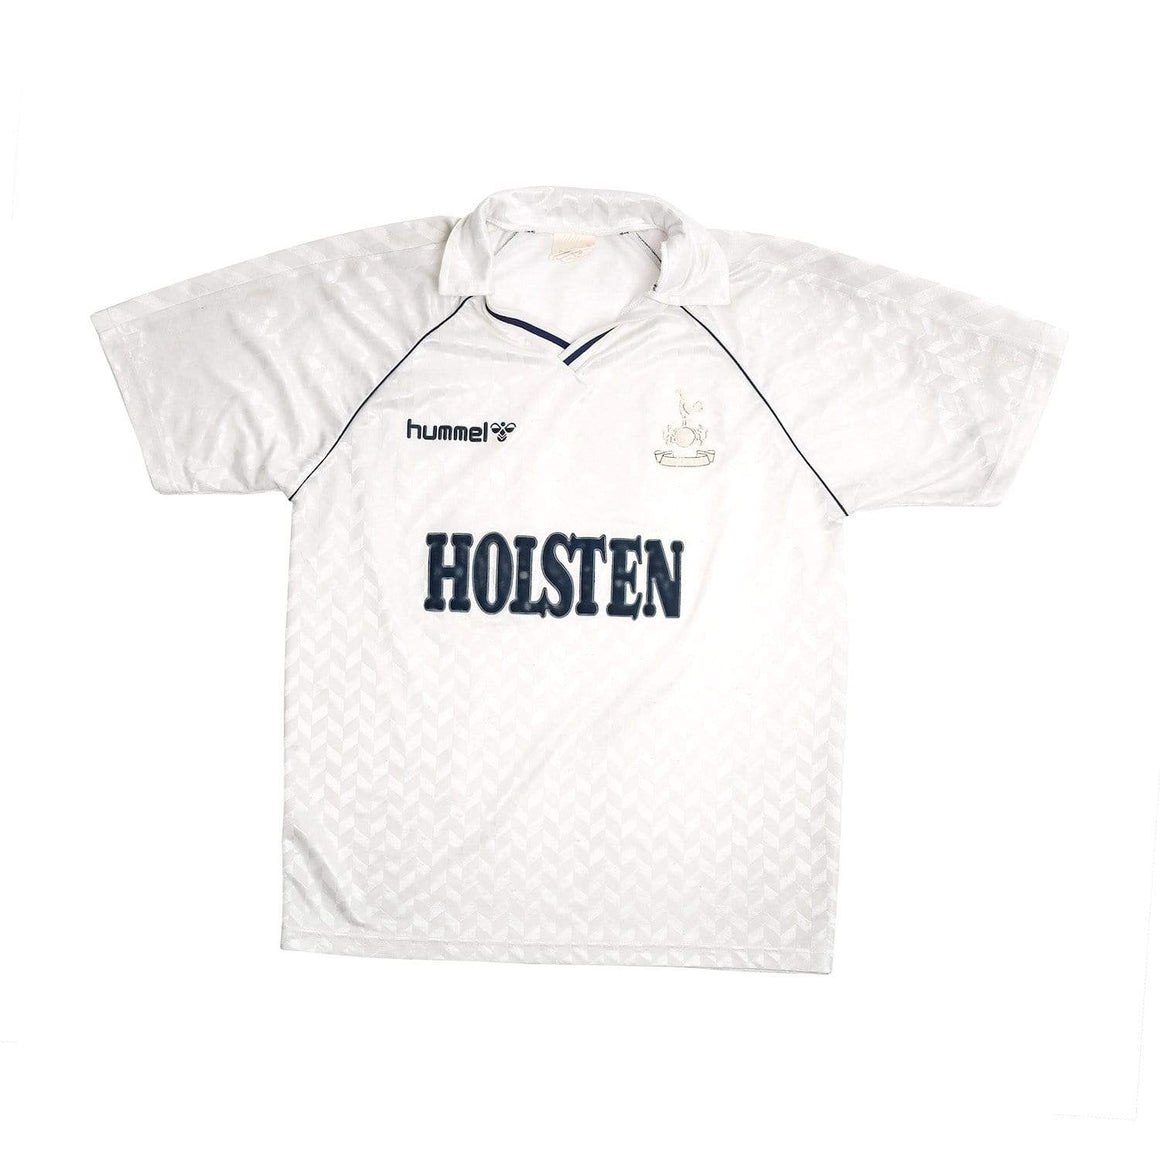 1987 Tottenham Hotspur football shirt (Very good) XL - Football Shirt Collective